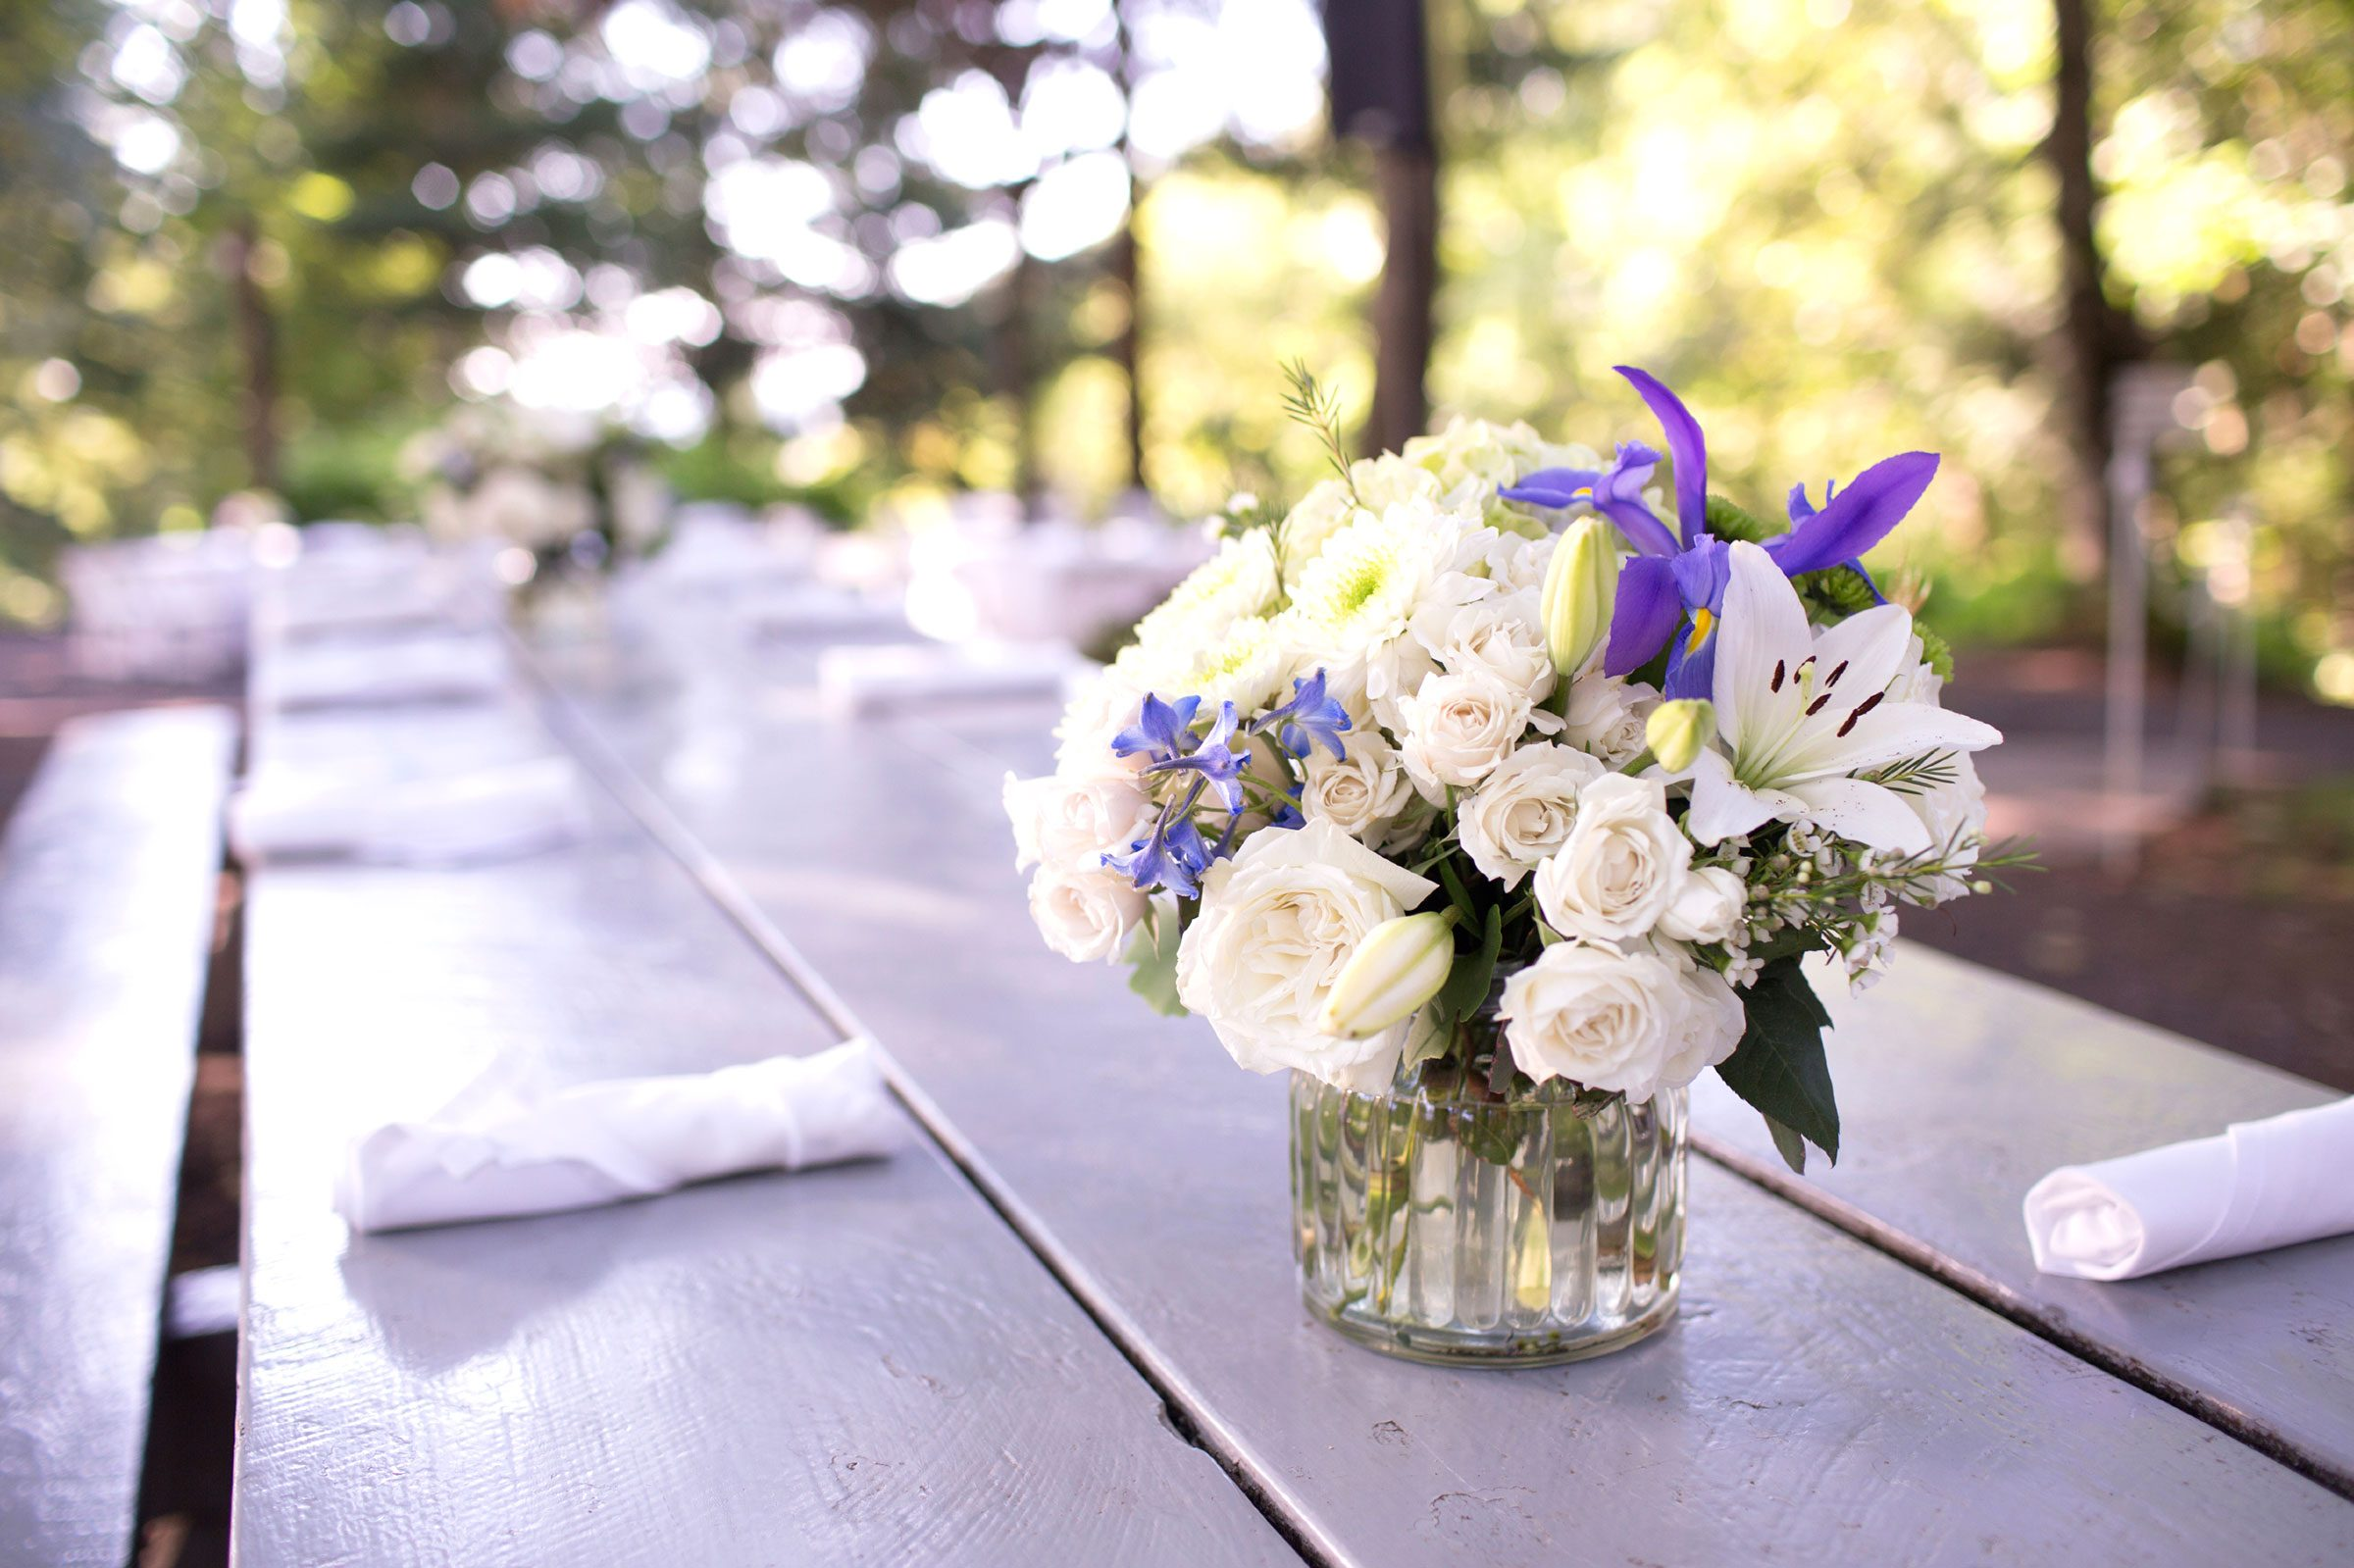 13 things your florist wont tell you readers digest thanks for continuing to buy flowers even in this economy dhlflorist Choice Image